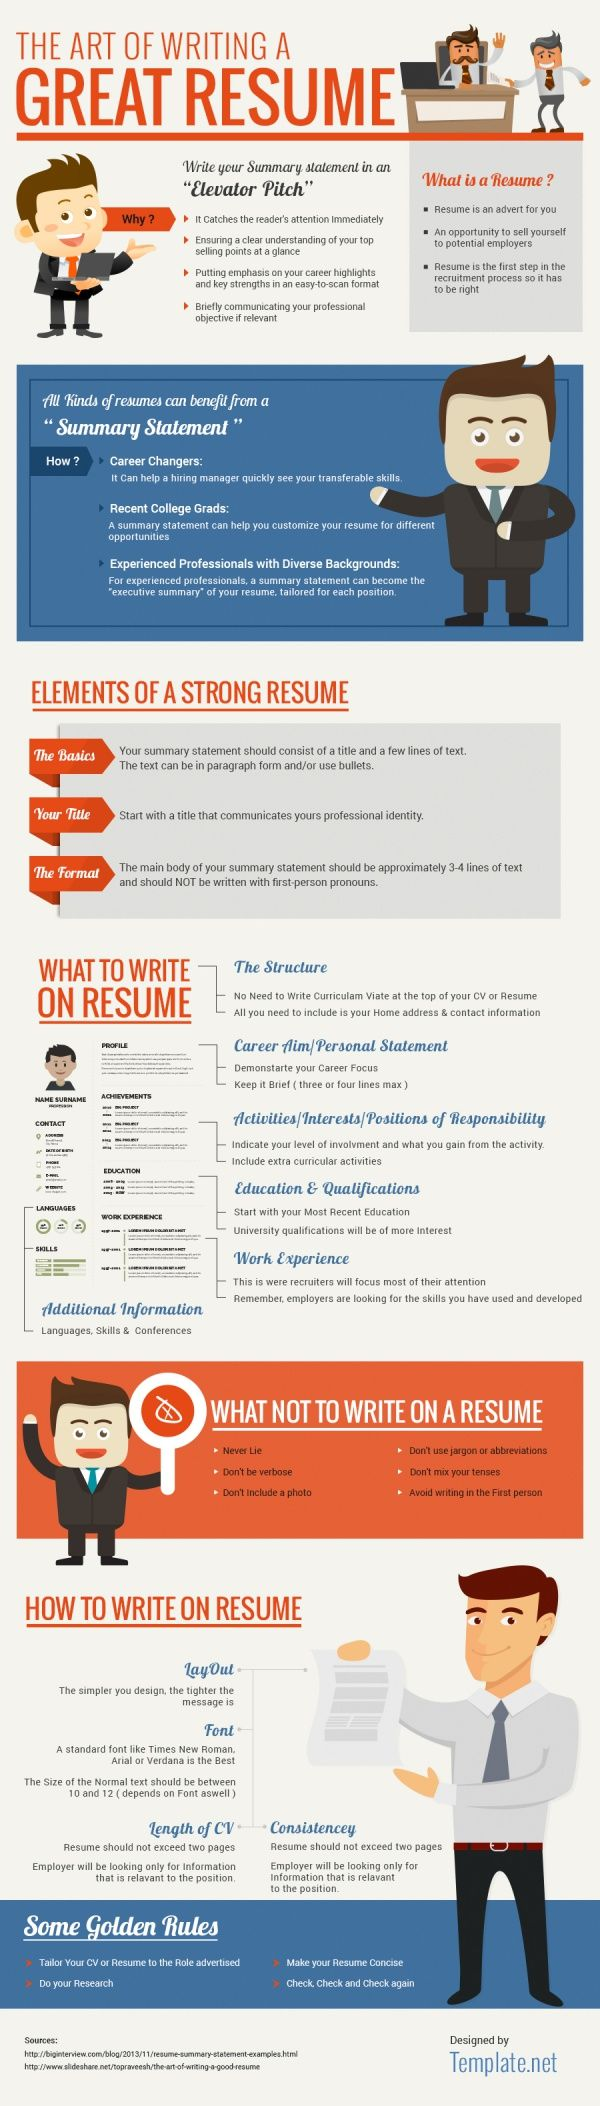 also as much as you probably want to know what goes into a great resume